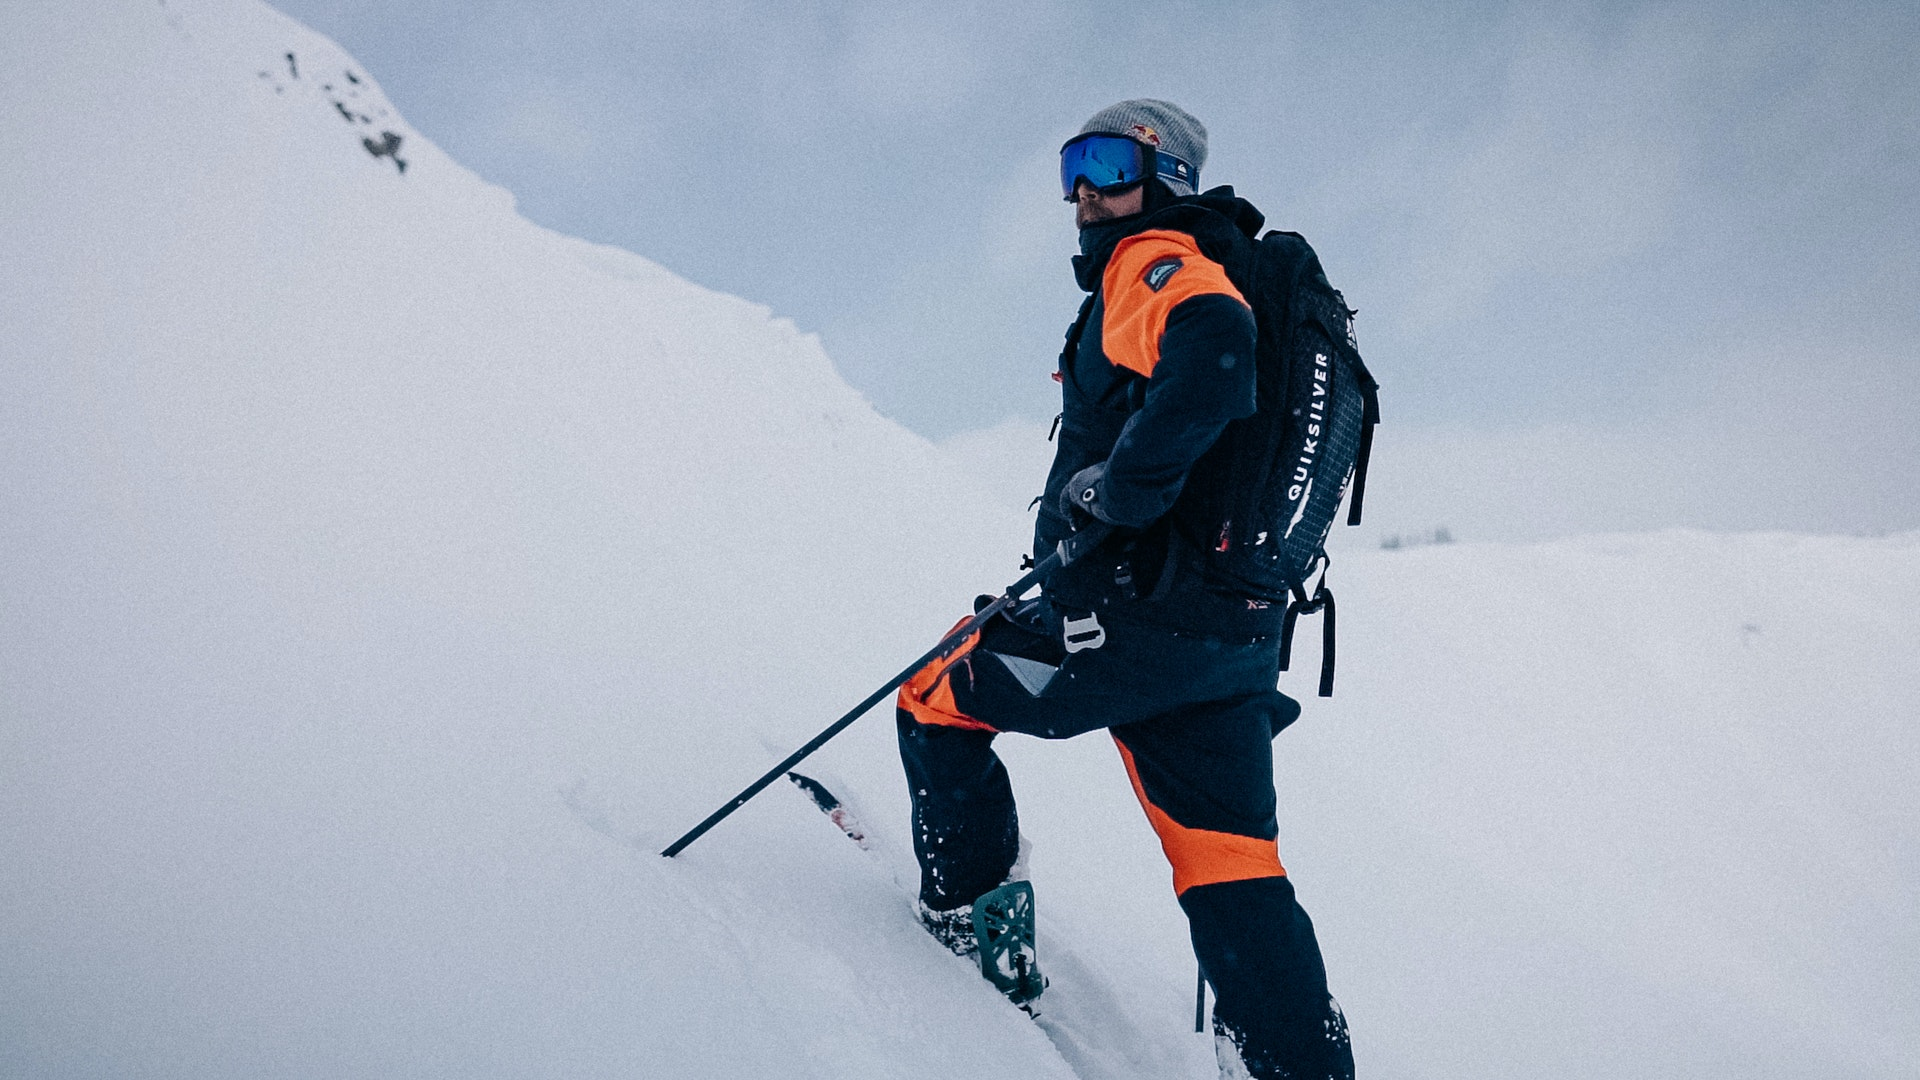 READ: The Quiksilver Highline Pro Jacket Deep Dive Review